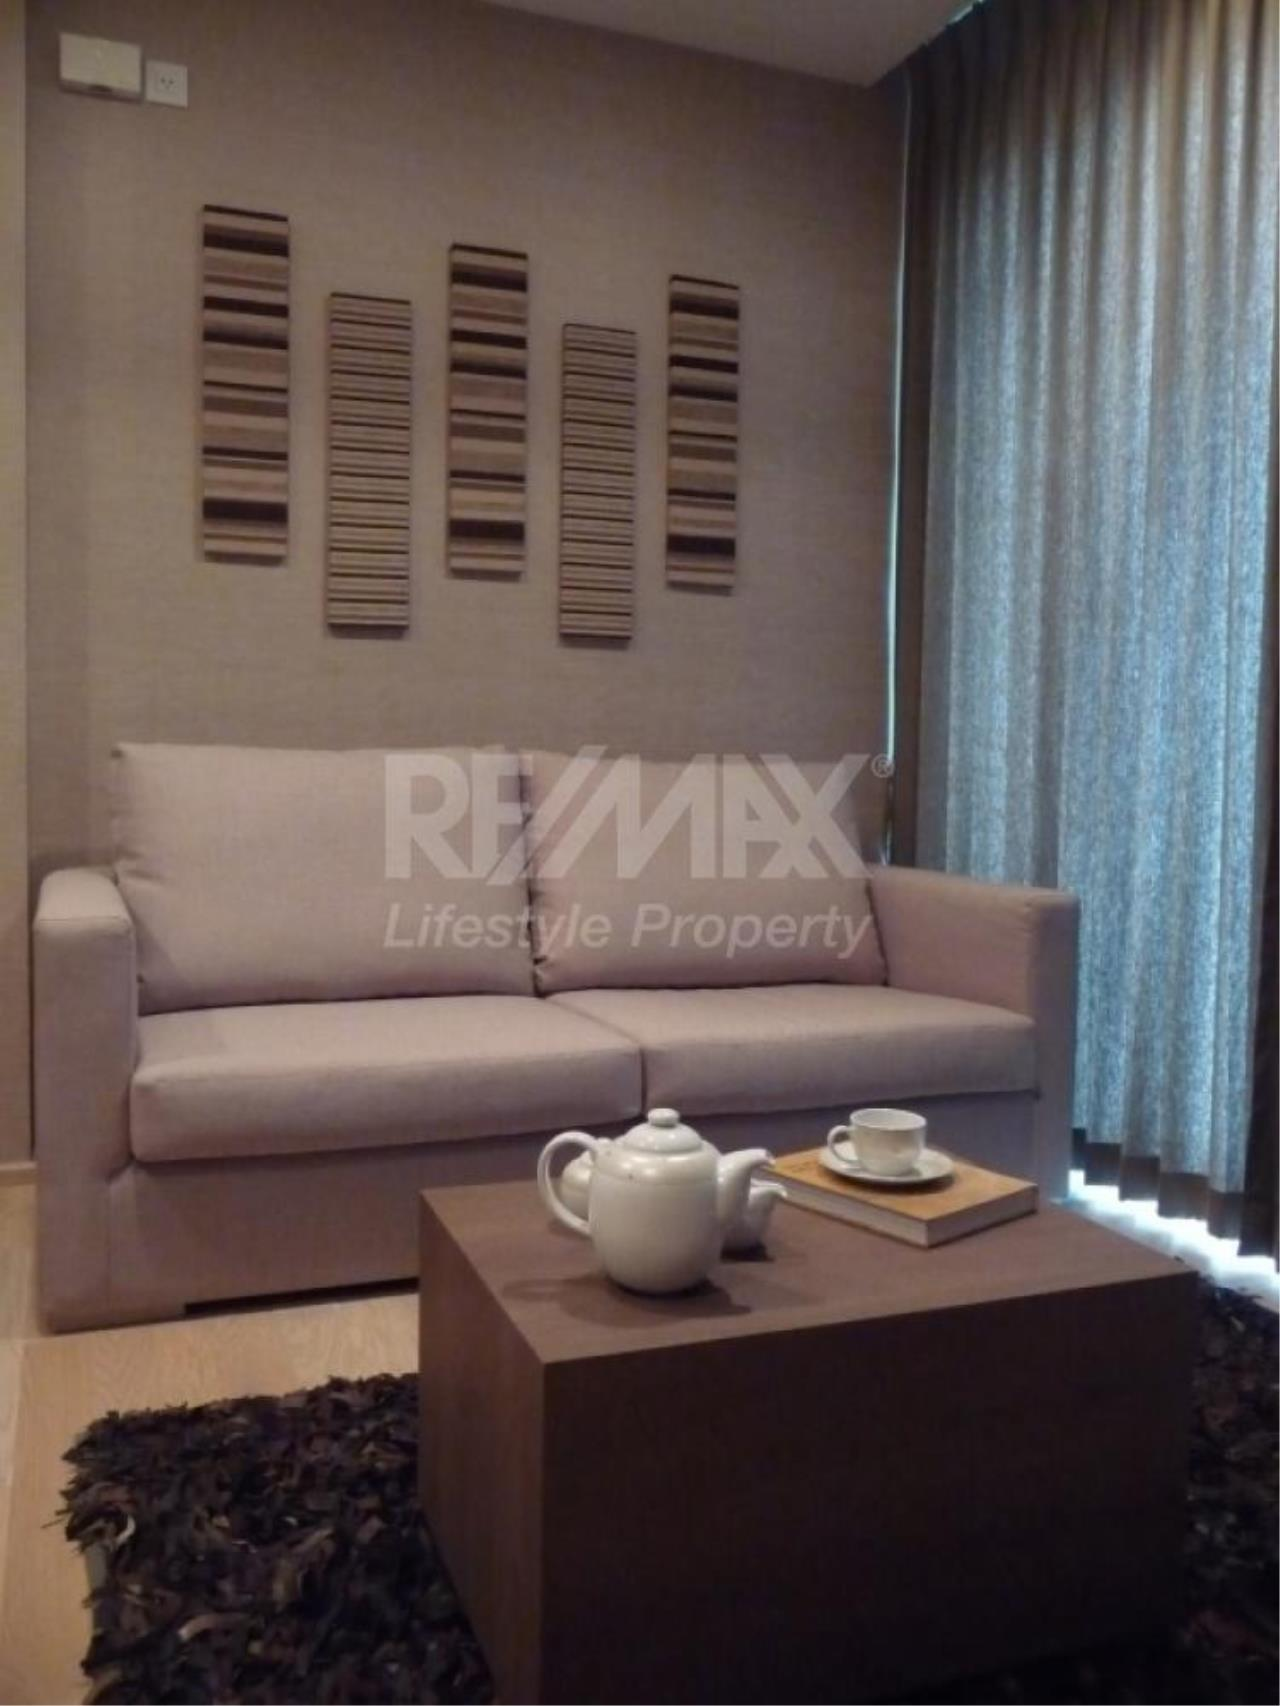 RE/MAX LifeStyle Property Agency's Siri at Sukhumvit 2